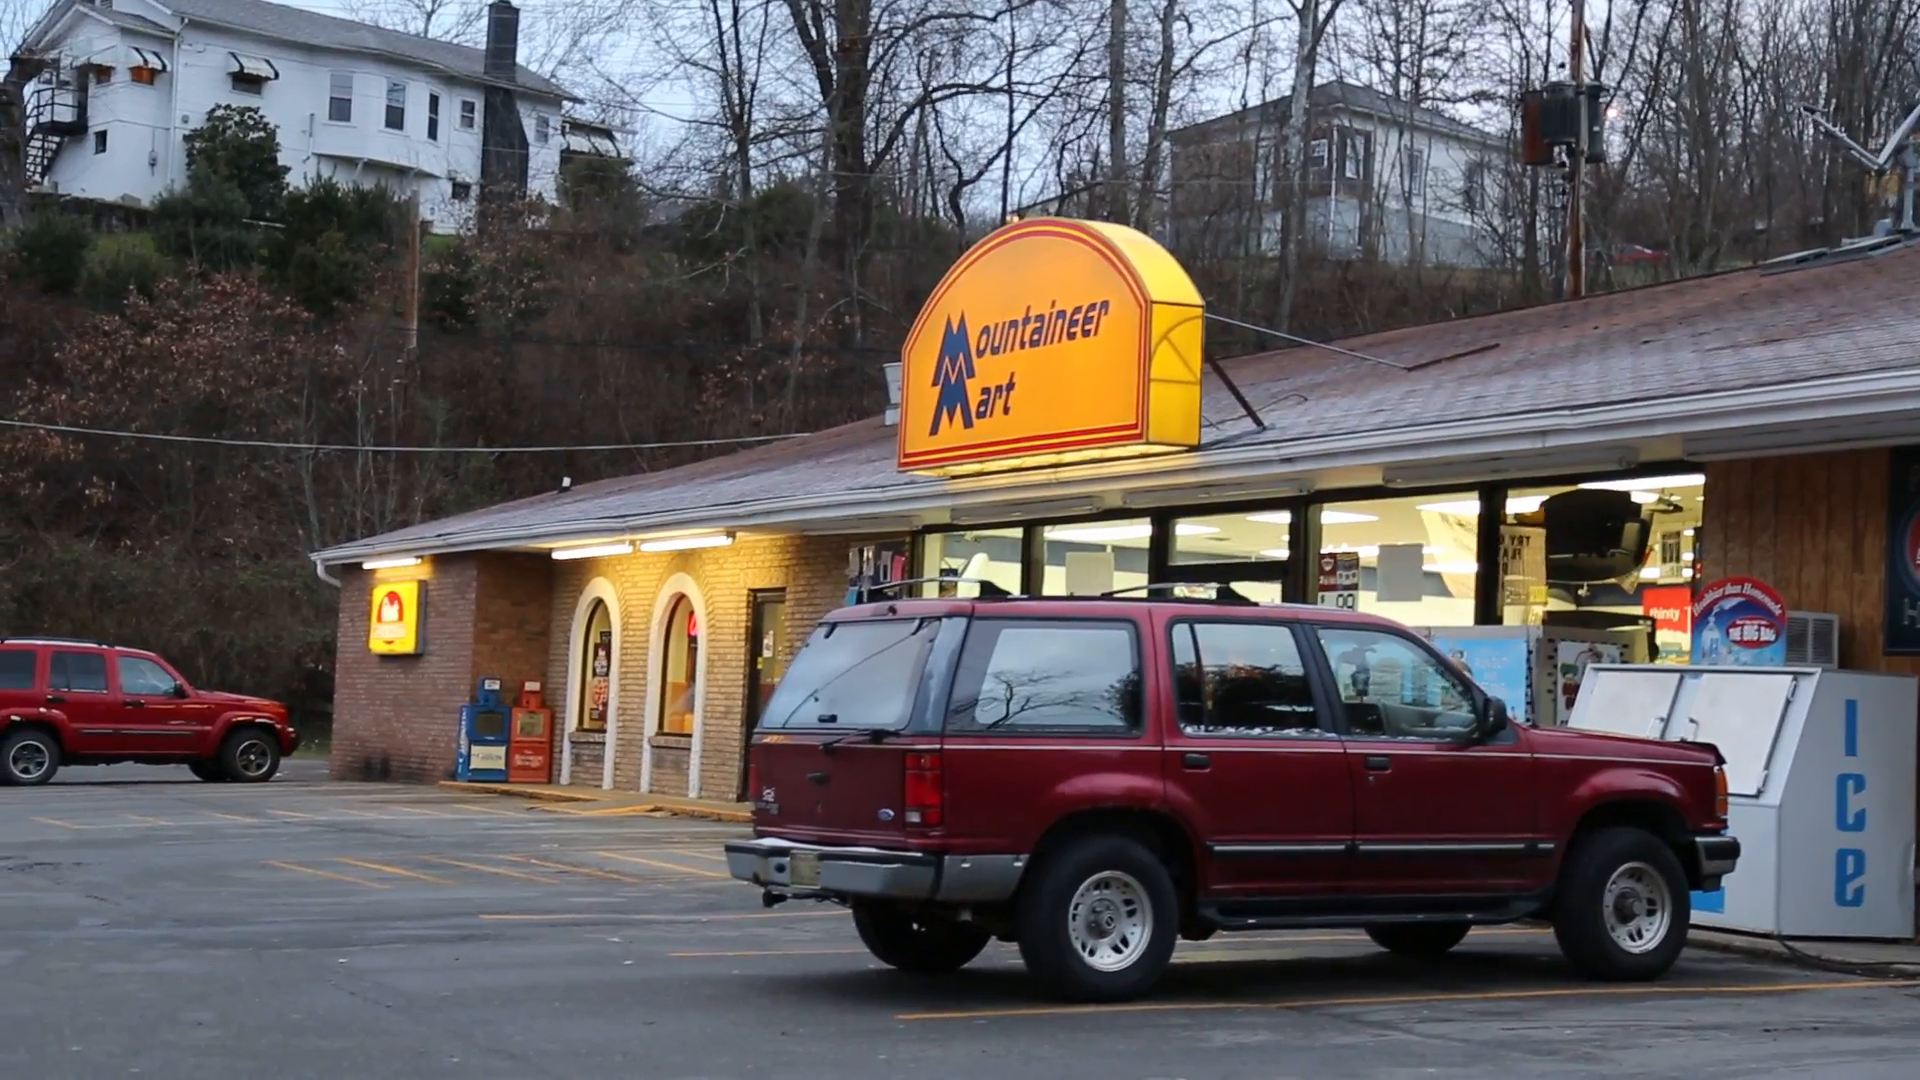 View of Mountaineer Mart store and parking lot (HD) Stock Video Footage -  VideoBlocks - Parking Lot PNG HD